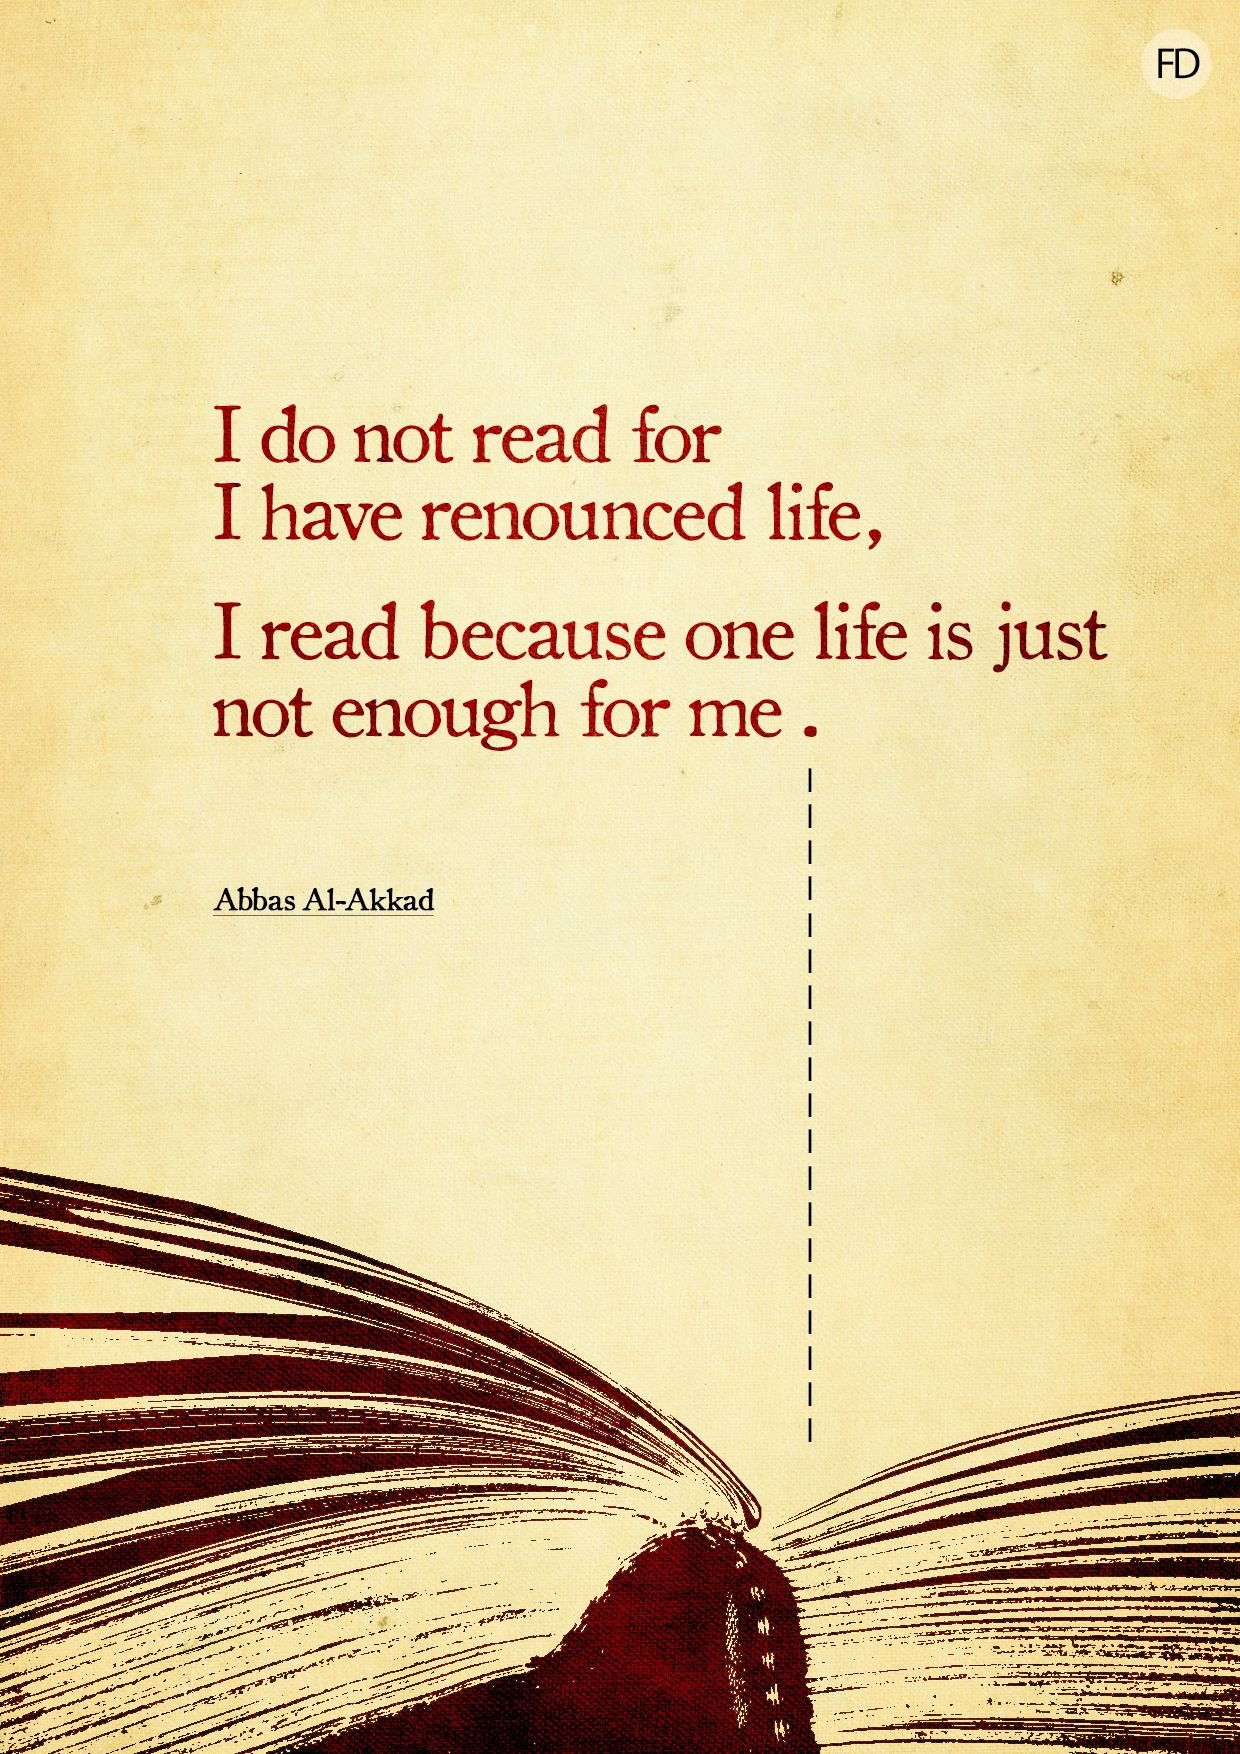 A Well Read Woman Is A Dangerous Creature Meaning i do not read for i have renounced life, i read because one